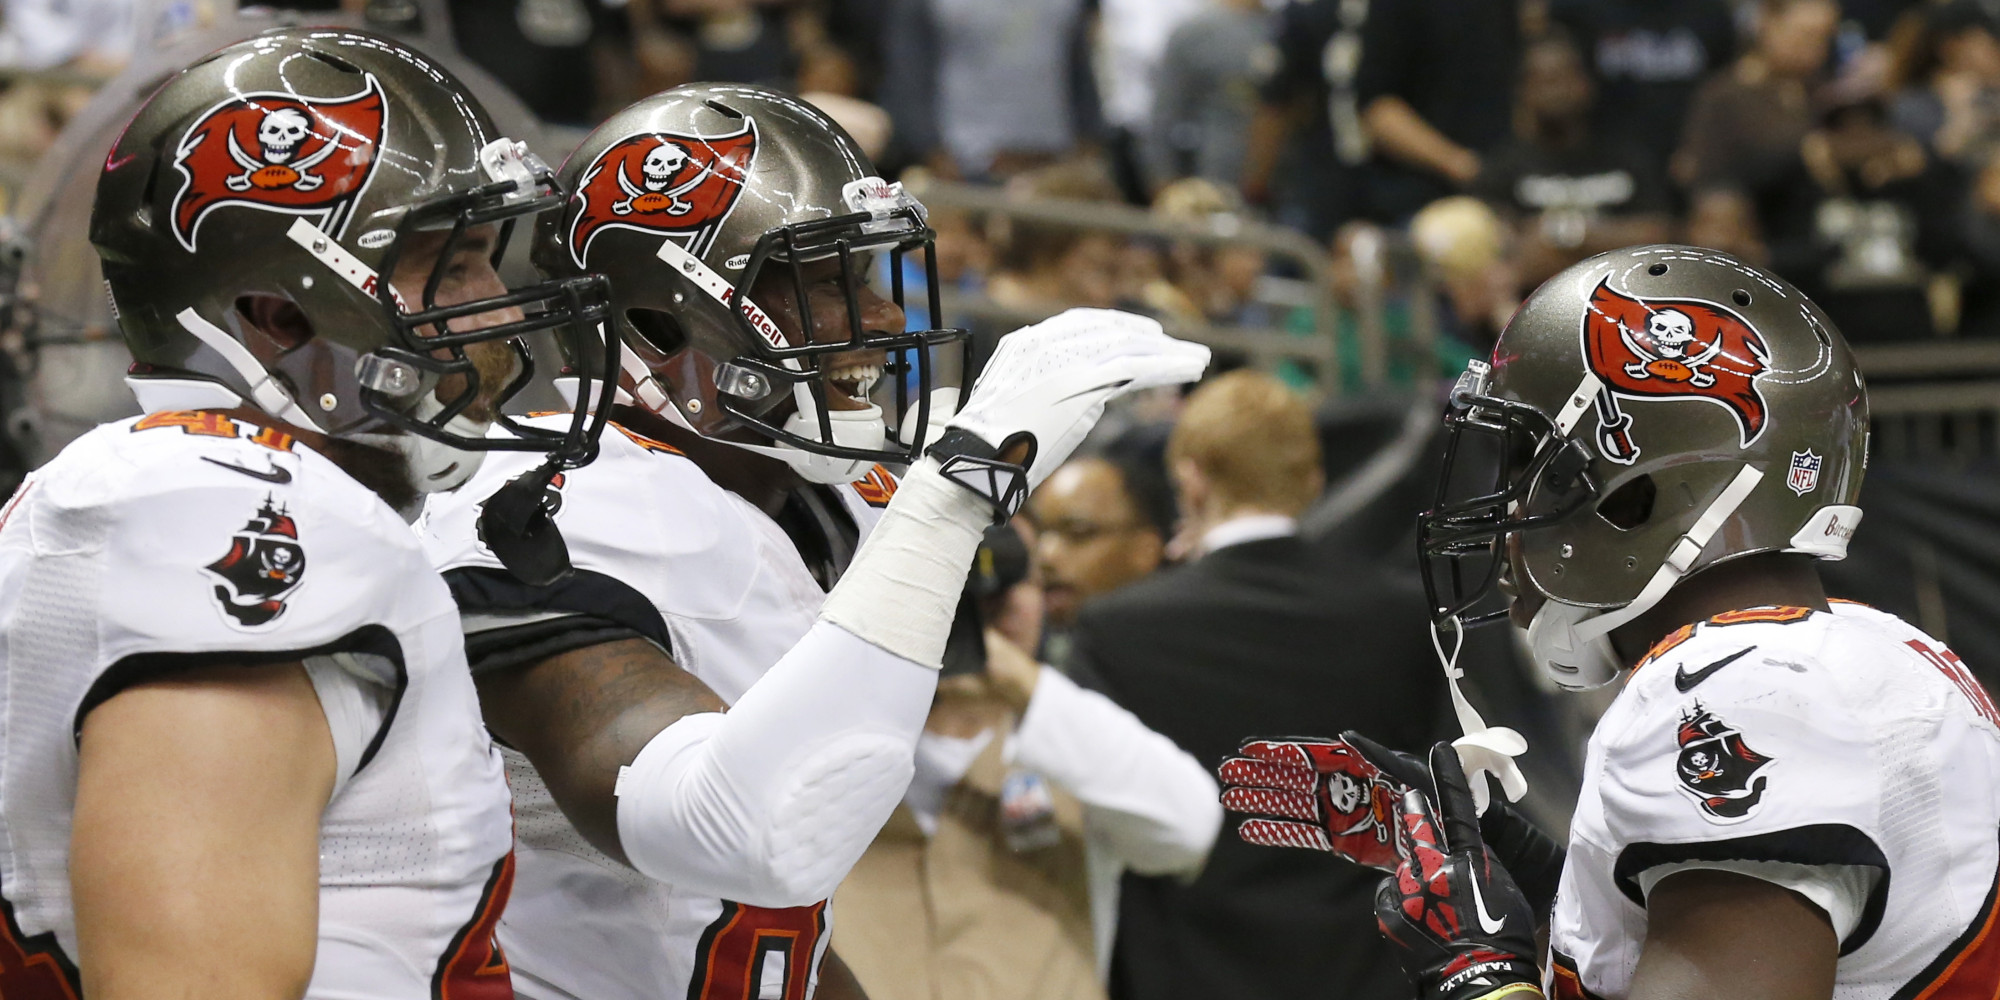 ... Buccaneers New Uniforms Tampa Bay Unveils New Jersey Design HuffPost ... 1410f5e8d29